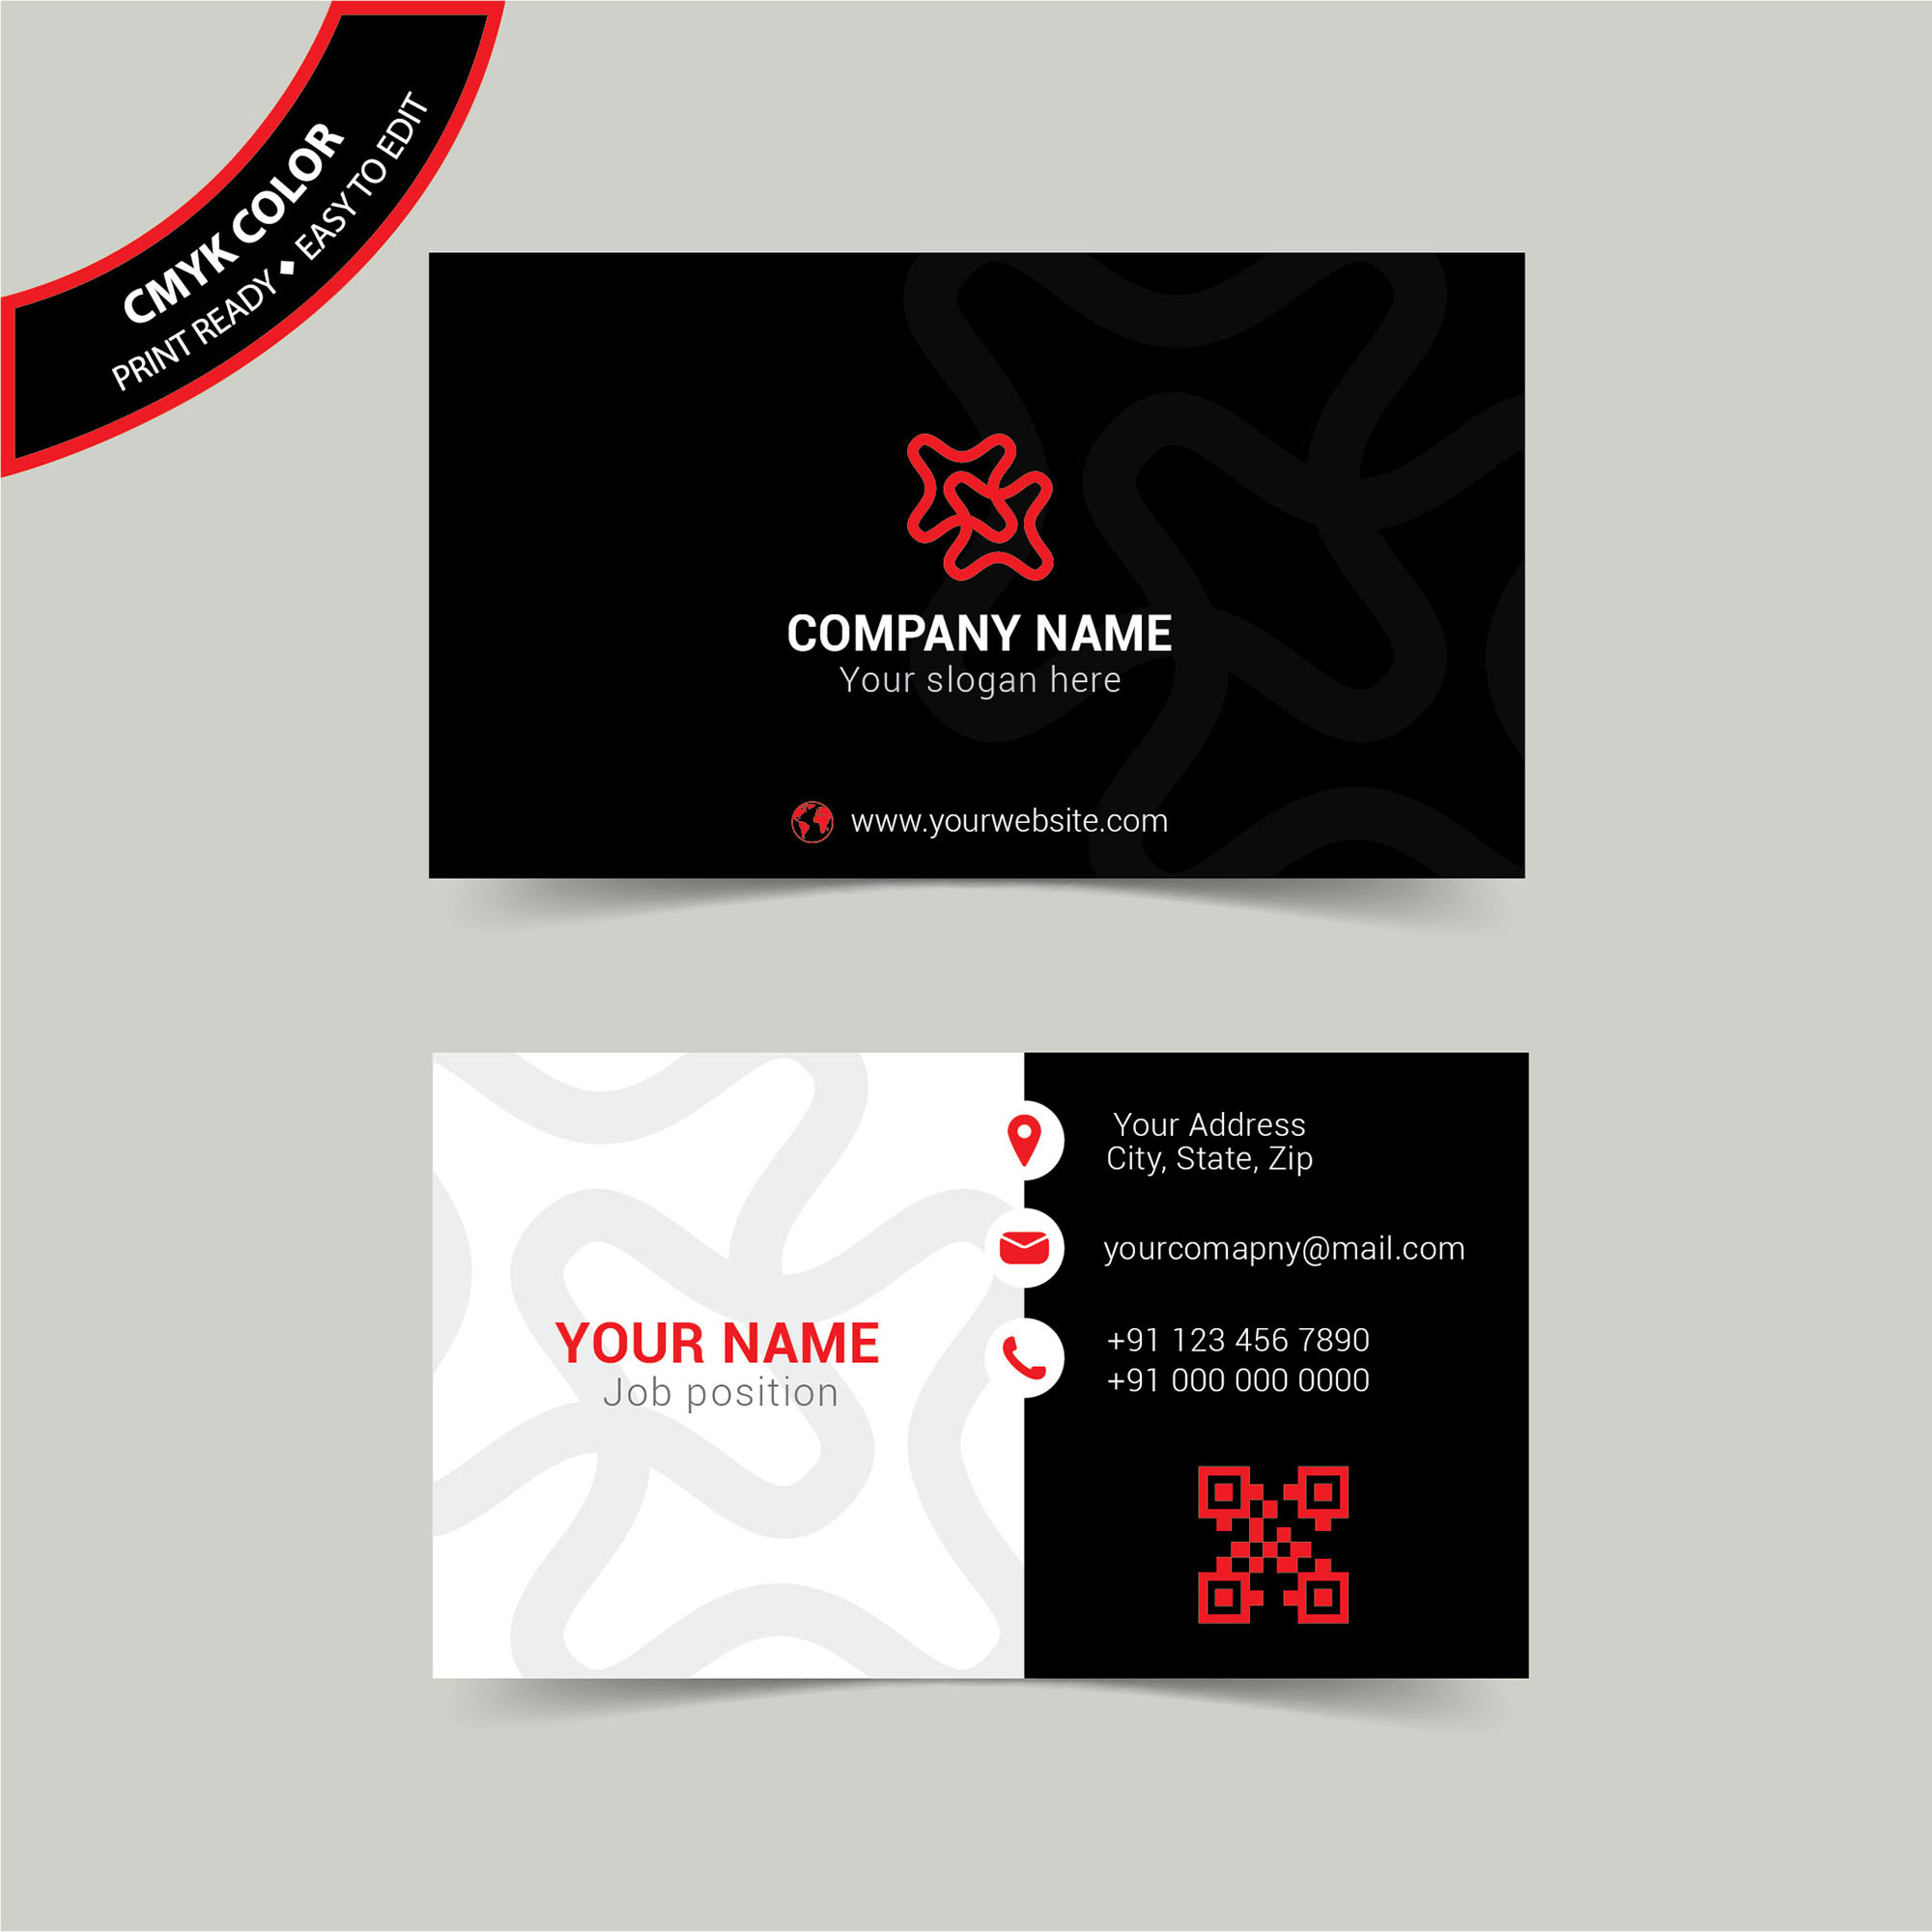 Simple business card design free download wisxi business card business cards business card design business card template design templates reheart Choice Image